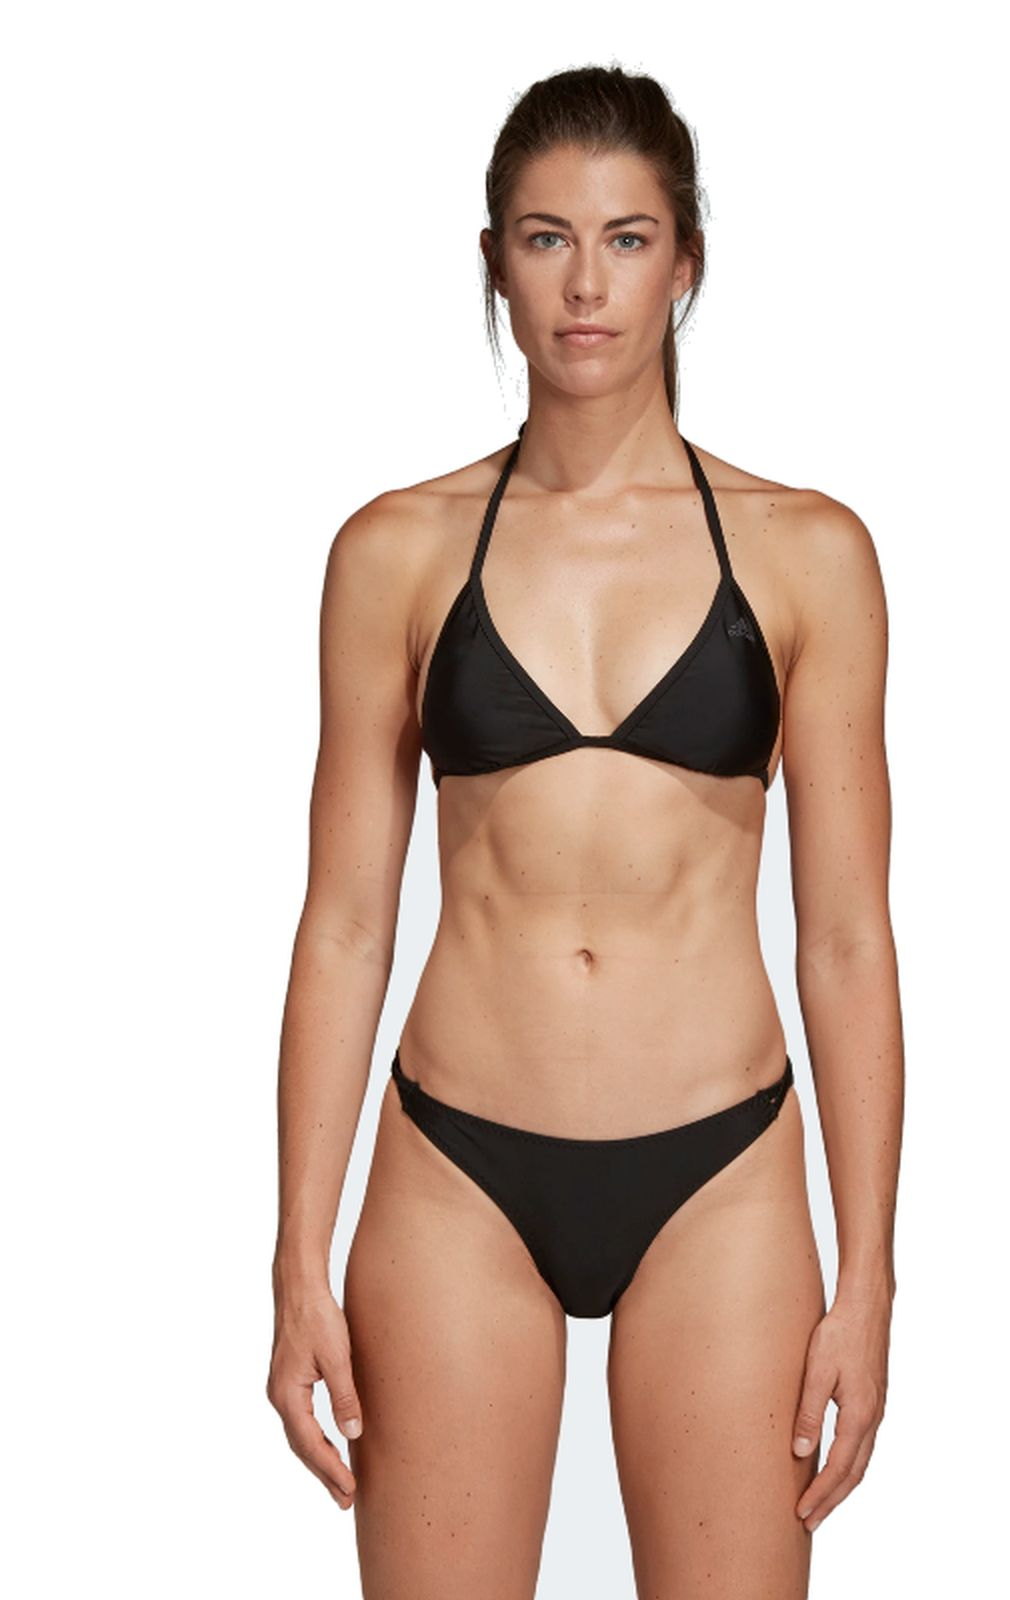 Details about Adidas Performance Women's Bikini Solid Triangle Black